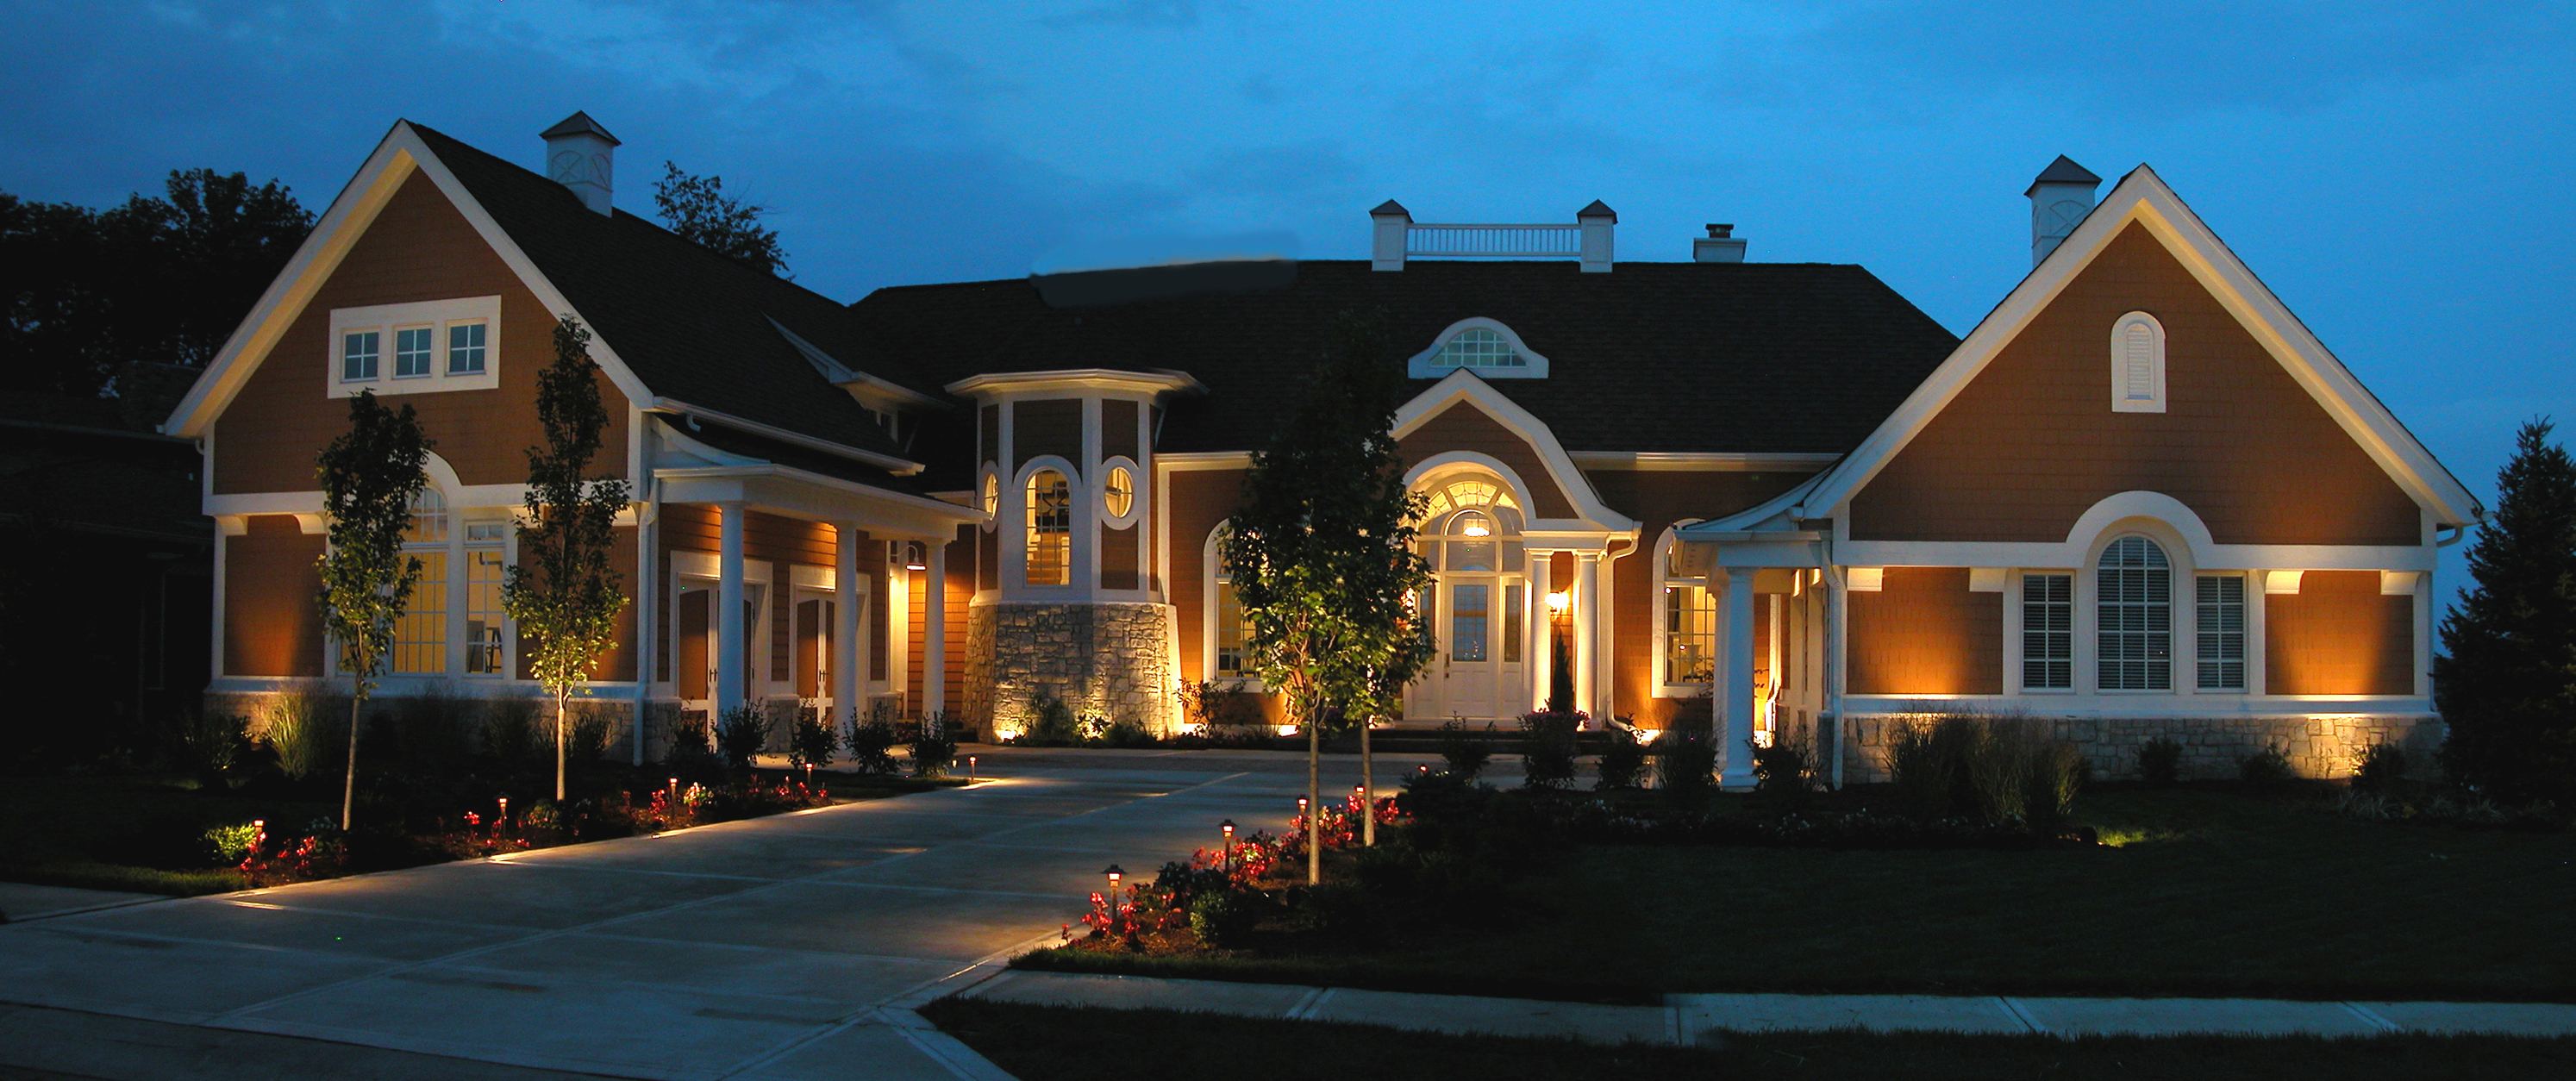 Landscape Lighting Franchise : Outdoor lighting perspectives franchise reviews iron